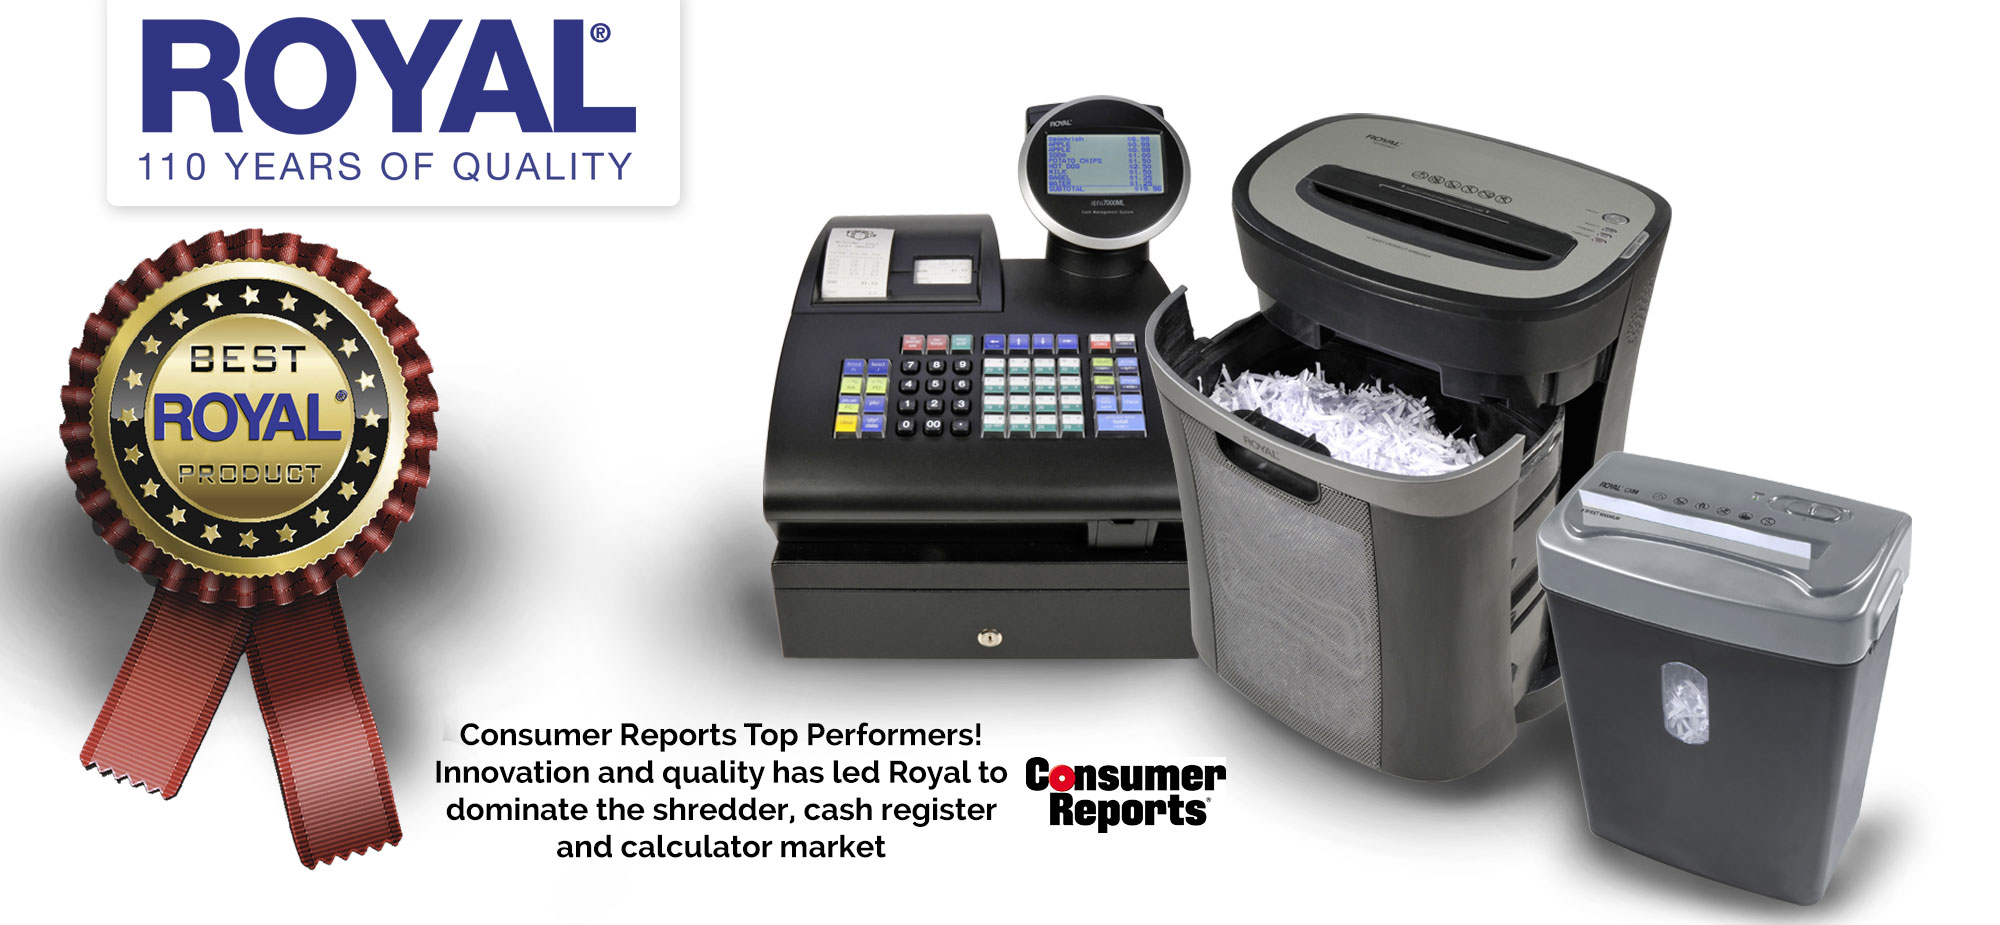 Consumer Reports Top Performance Shredder Pick | Royal Consumer Information Products